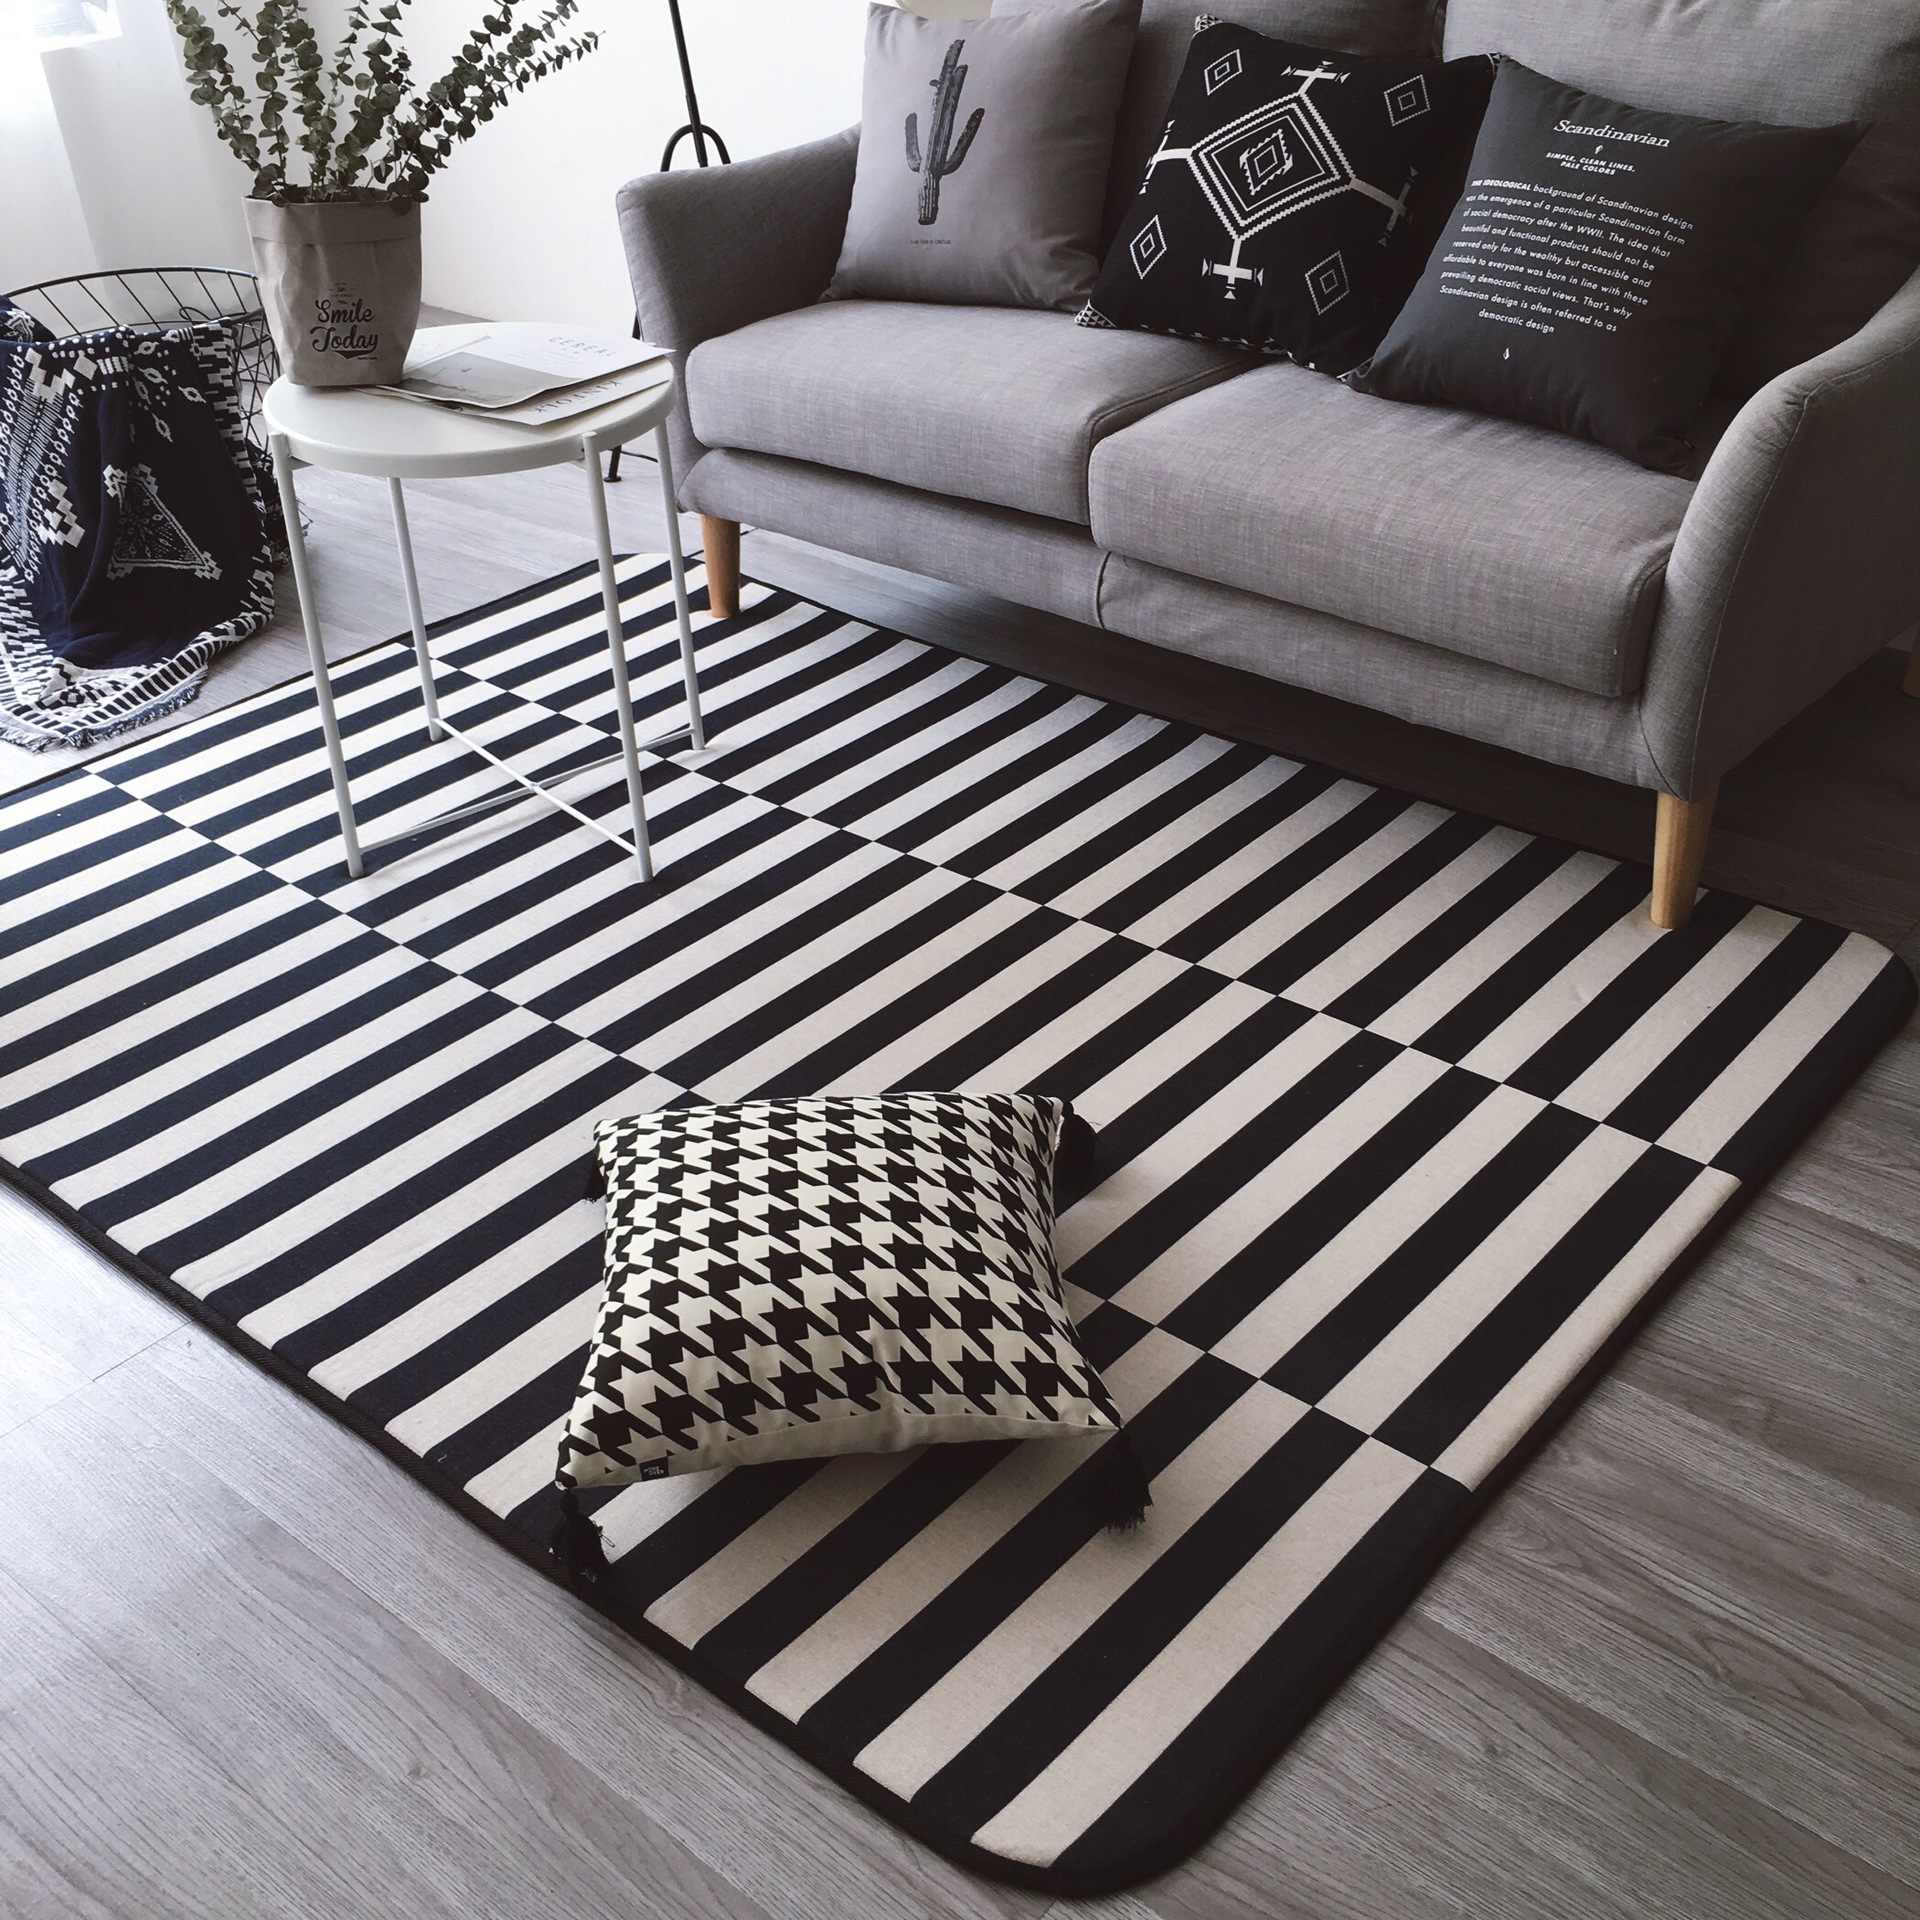 145x195cm Black White Rugs And Carpets